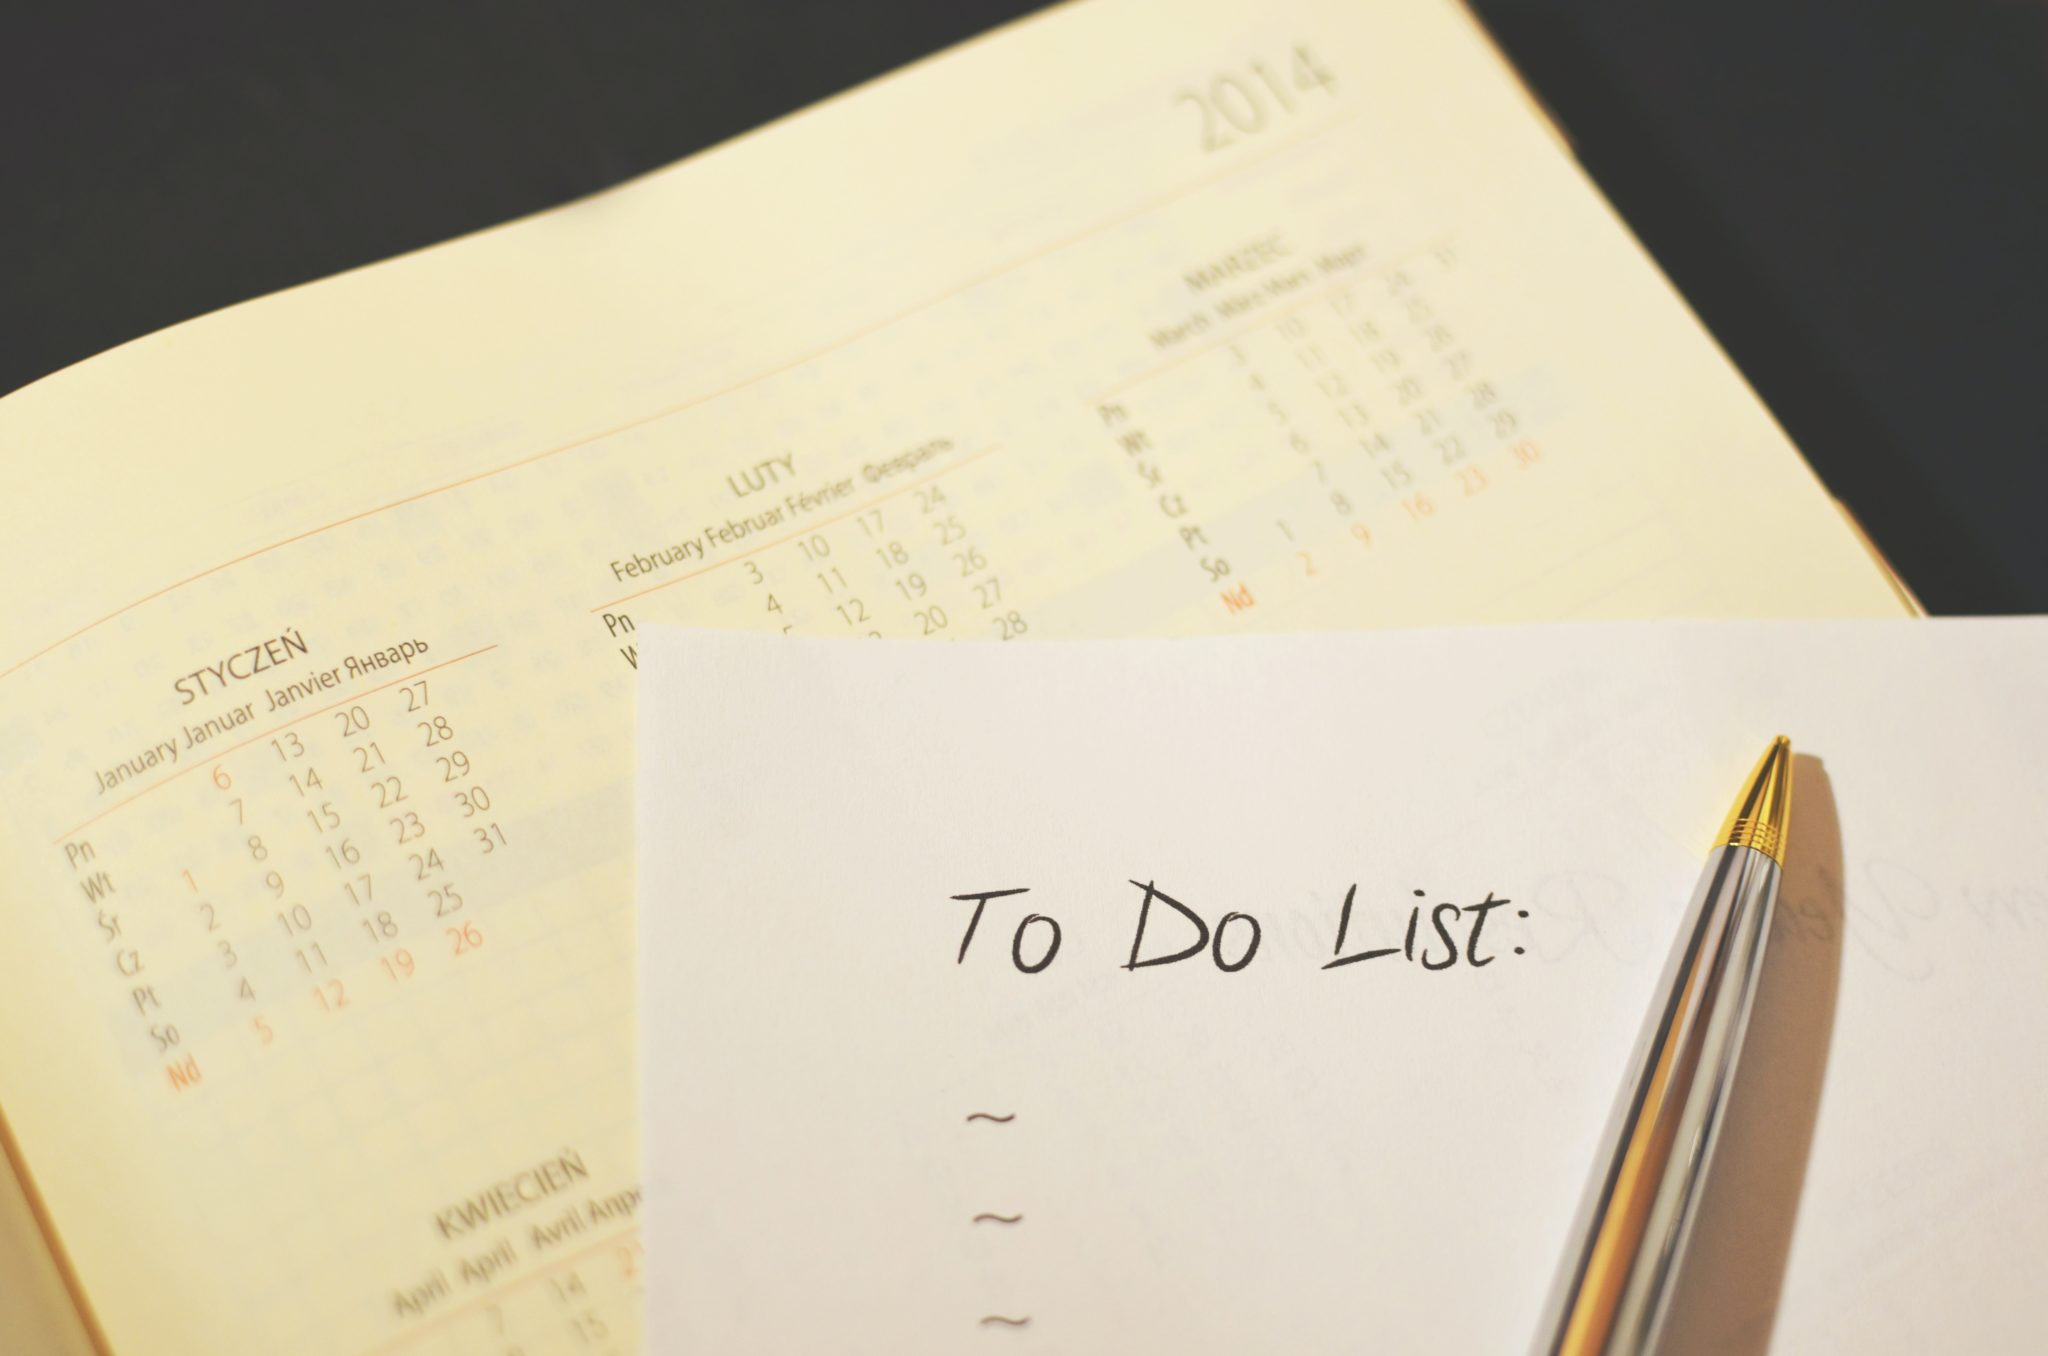 dealing-with-a-difficult-client-checklist